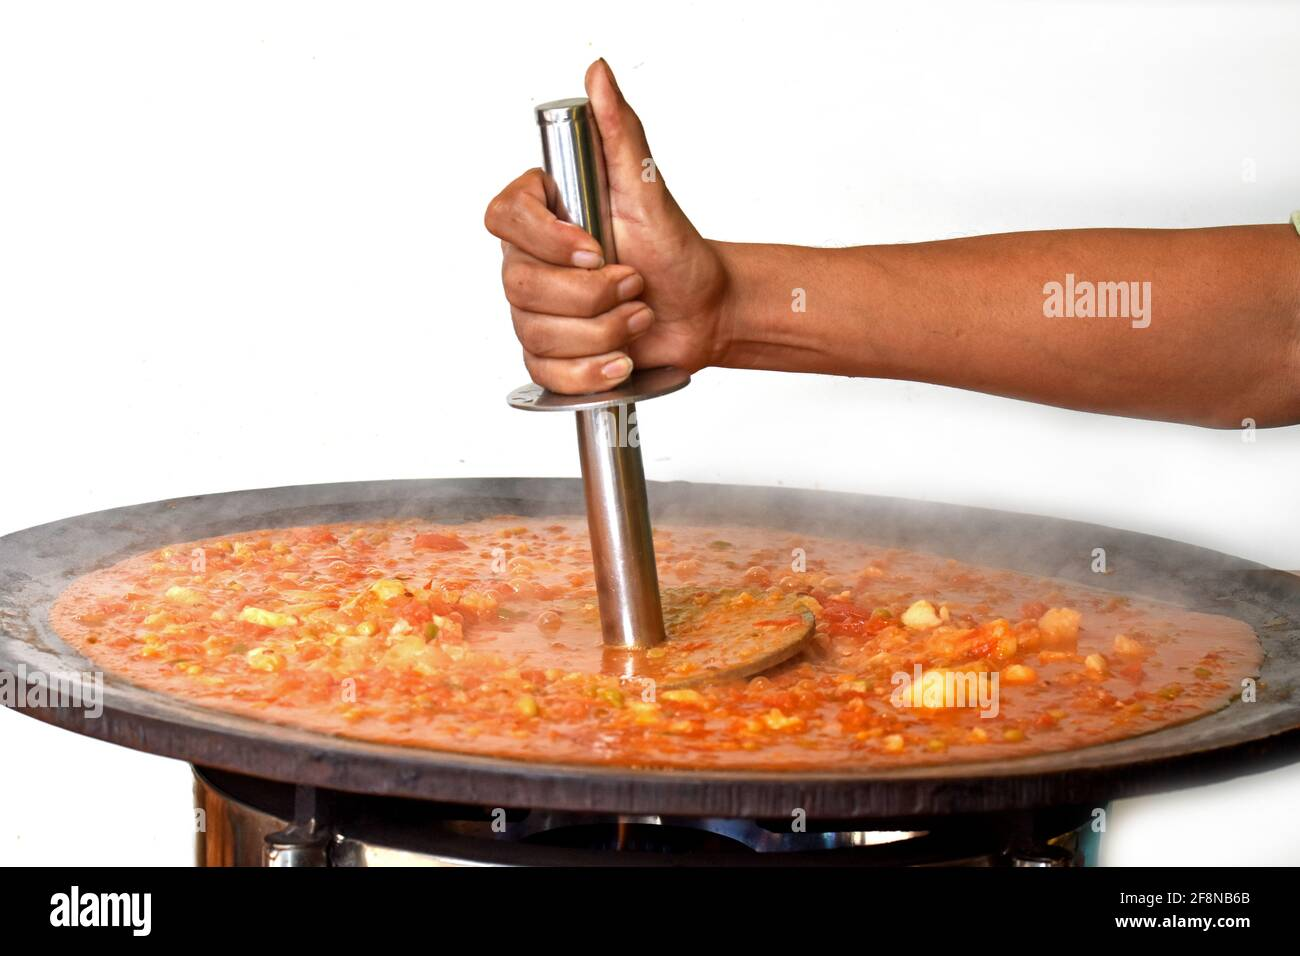 Pav Bhaji being cooked in the streets of India, Indian Mumbai food Pav bhaji, Pav Bhaji is a fast food dish, Thick and spicy vegetable curry, Stock Photo